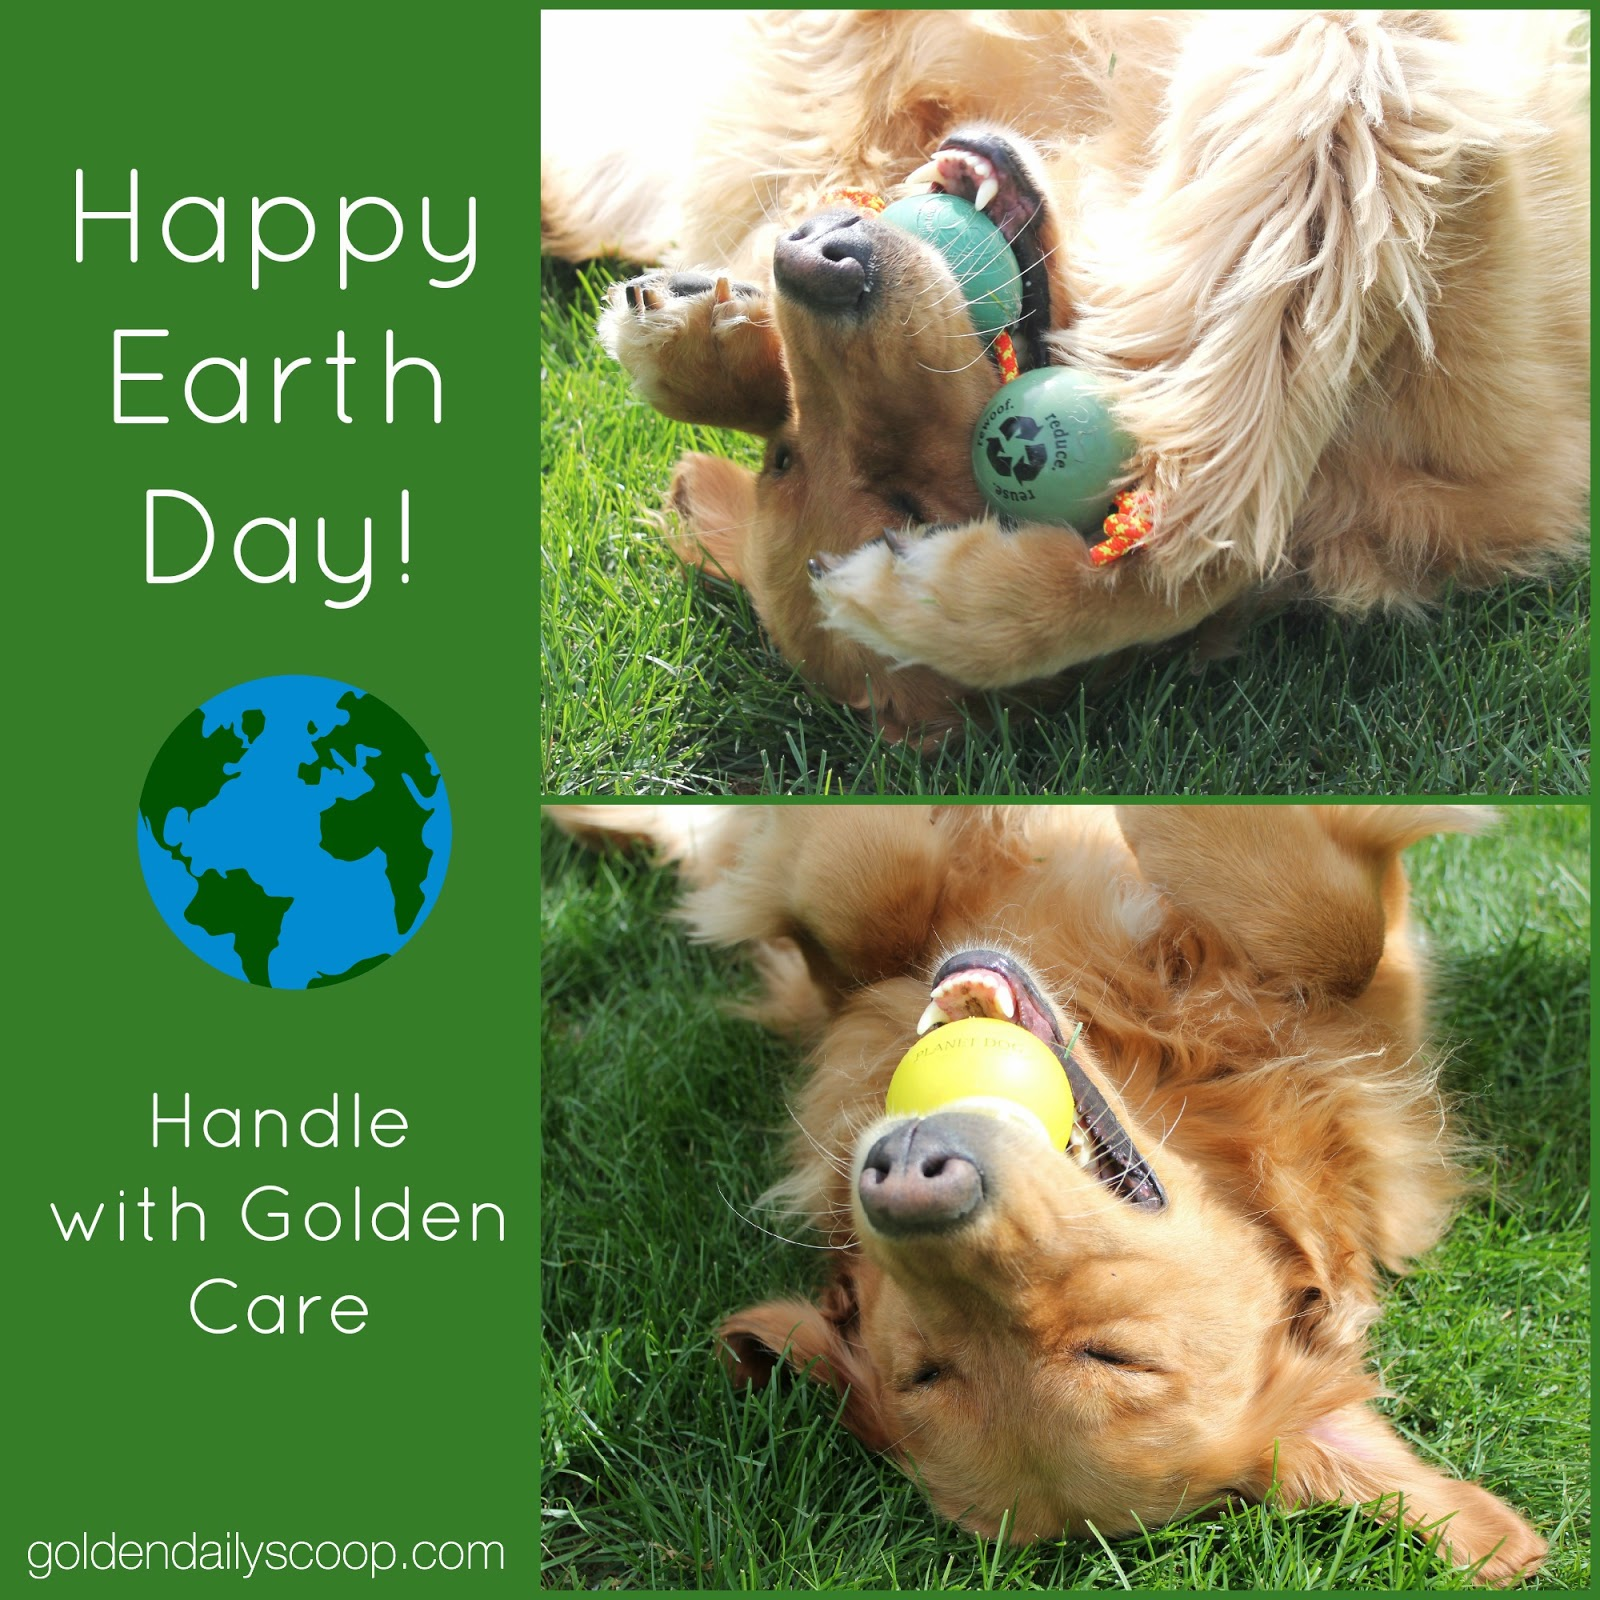 dog playing with planet dog ball in grass on earth day